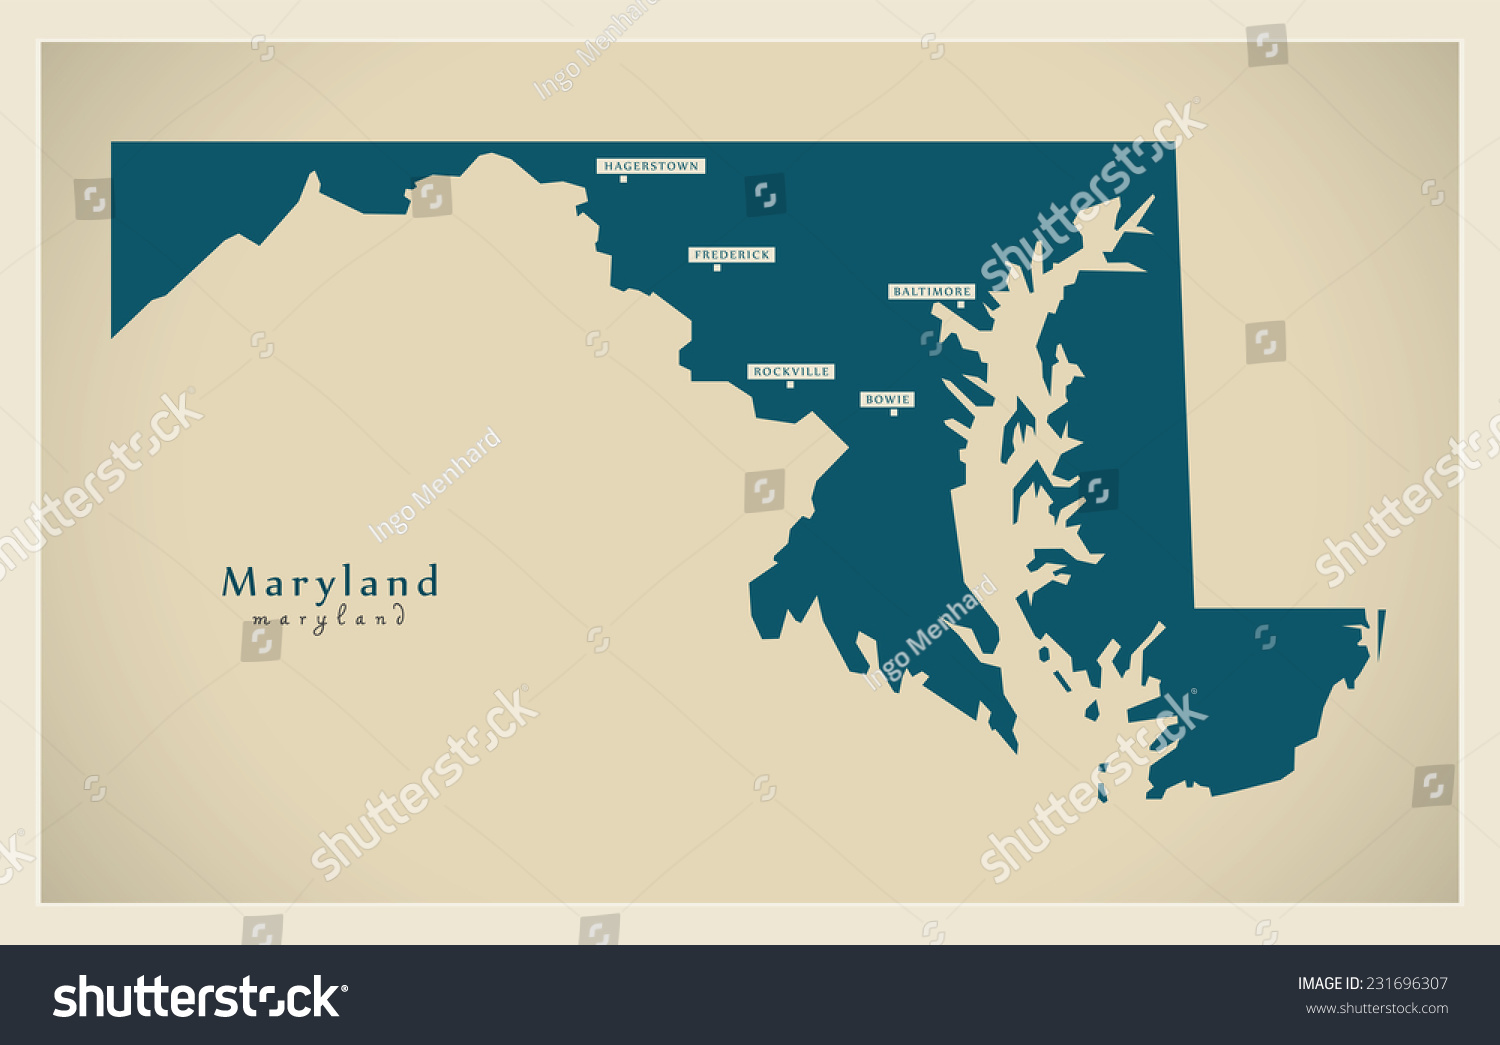 Maryland State Maps USA Maps Of Maryland MD Maryland Map Usa Maps - Savannah on us map